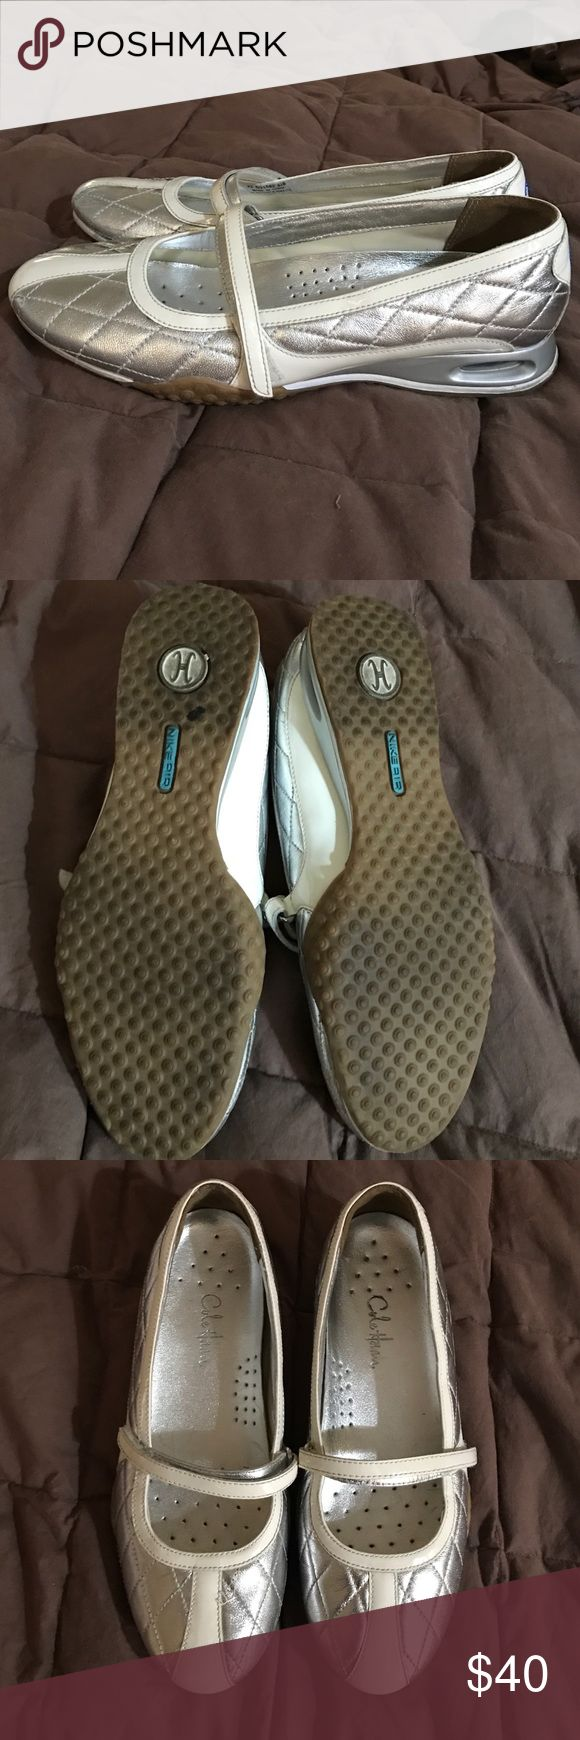 Cole Haan Nike Air Flats Size 6 1/2 Silver Cole Haan Nike Air Flats Size 6 1/2 Silver. Hardly used in great condition Cole Haan Shoes Flats & Loafers